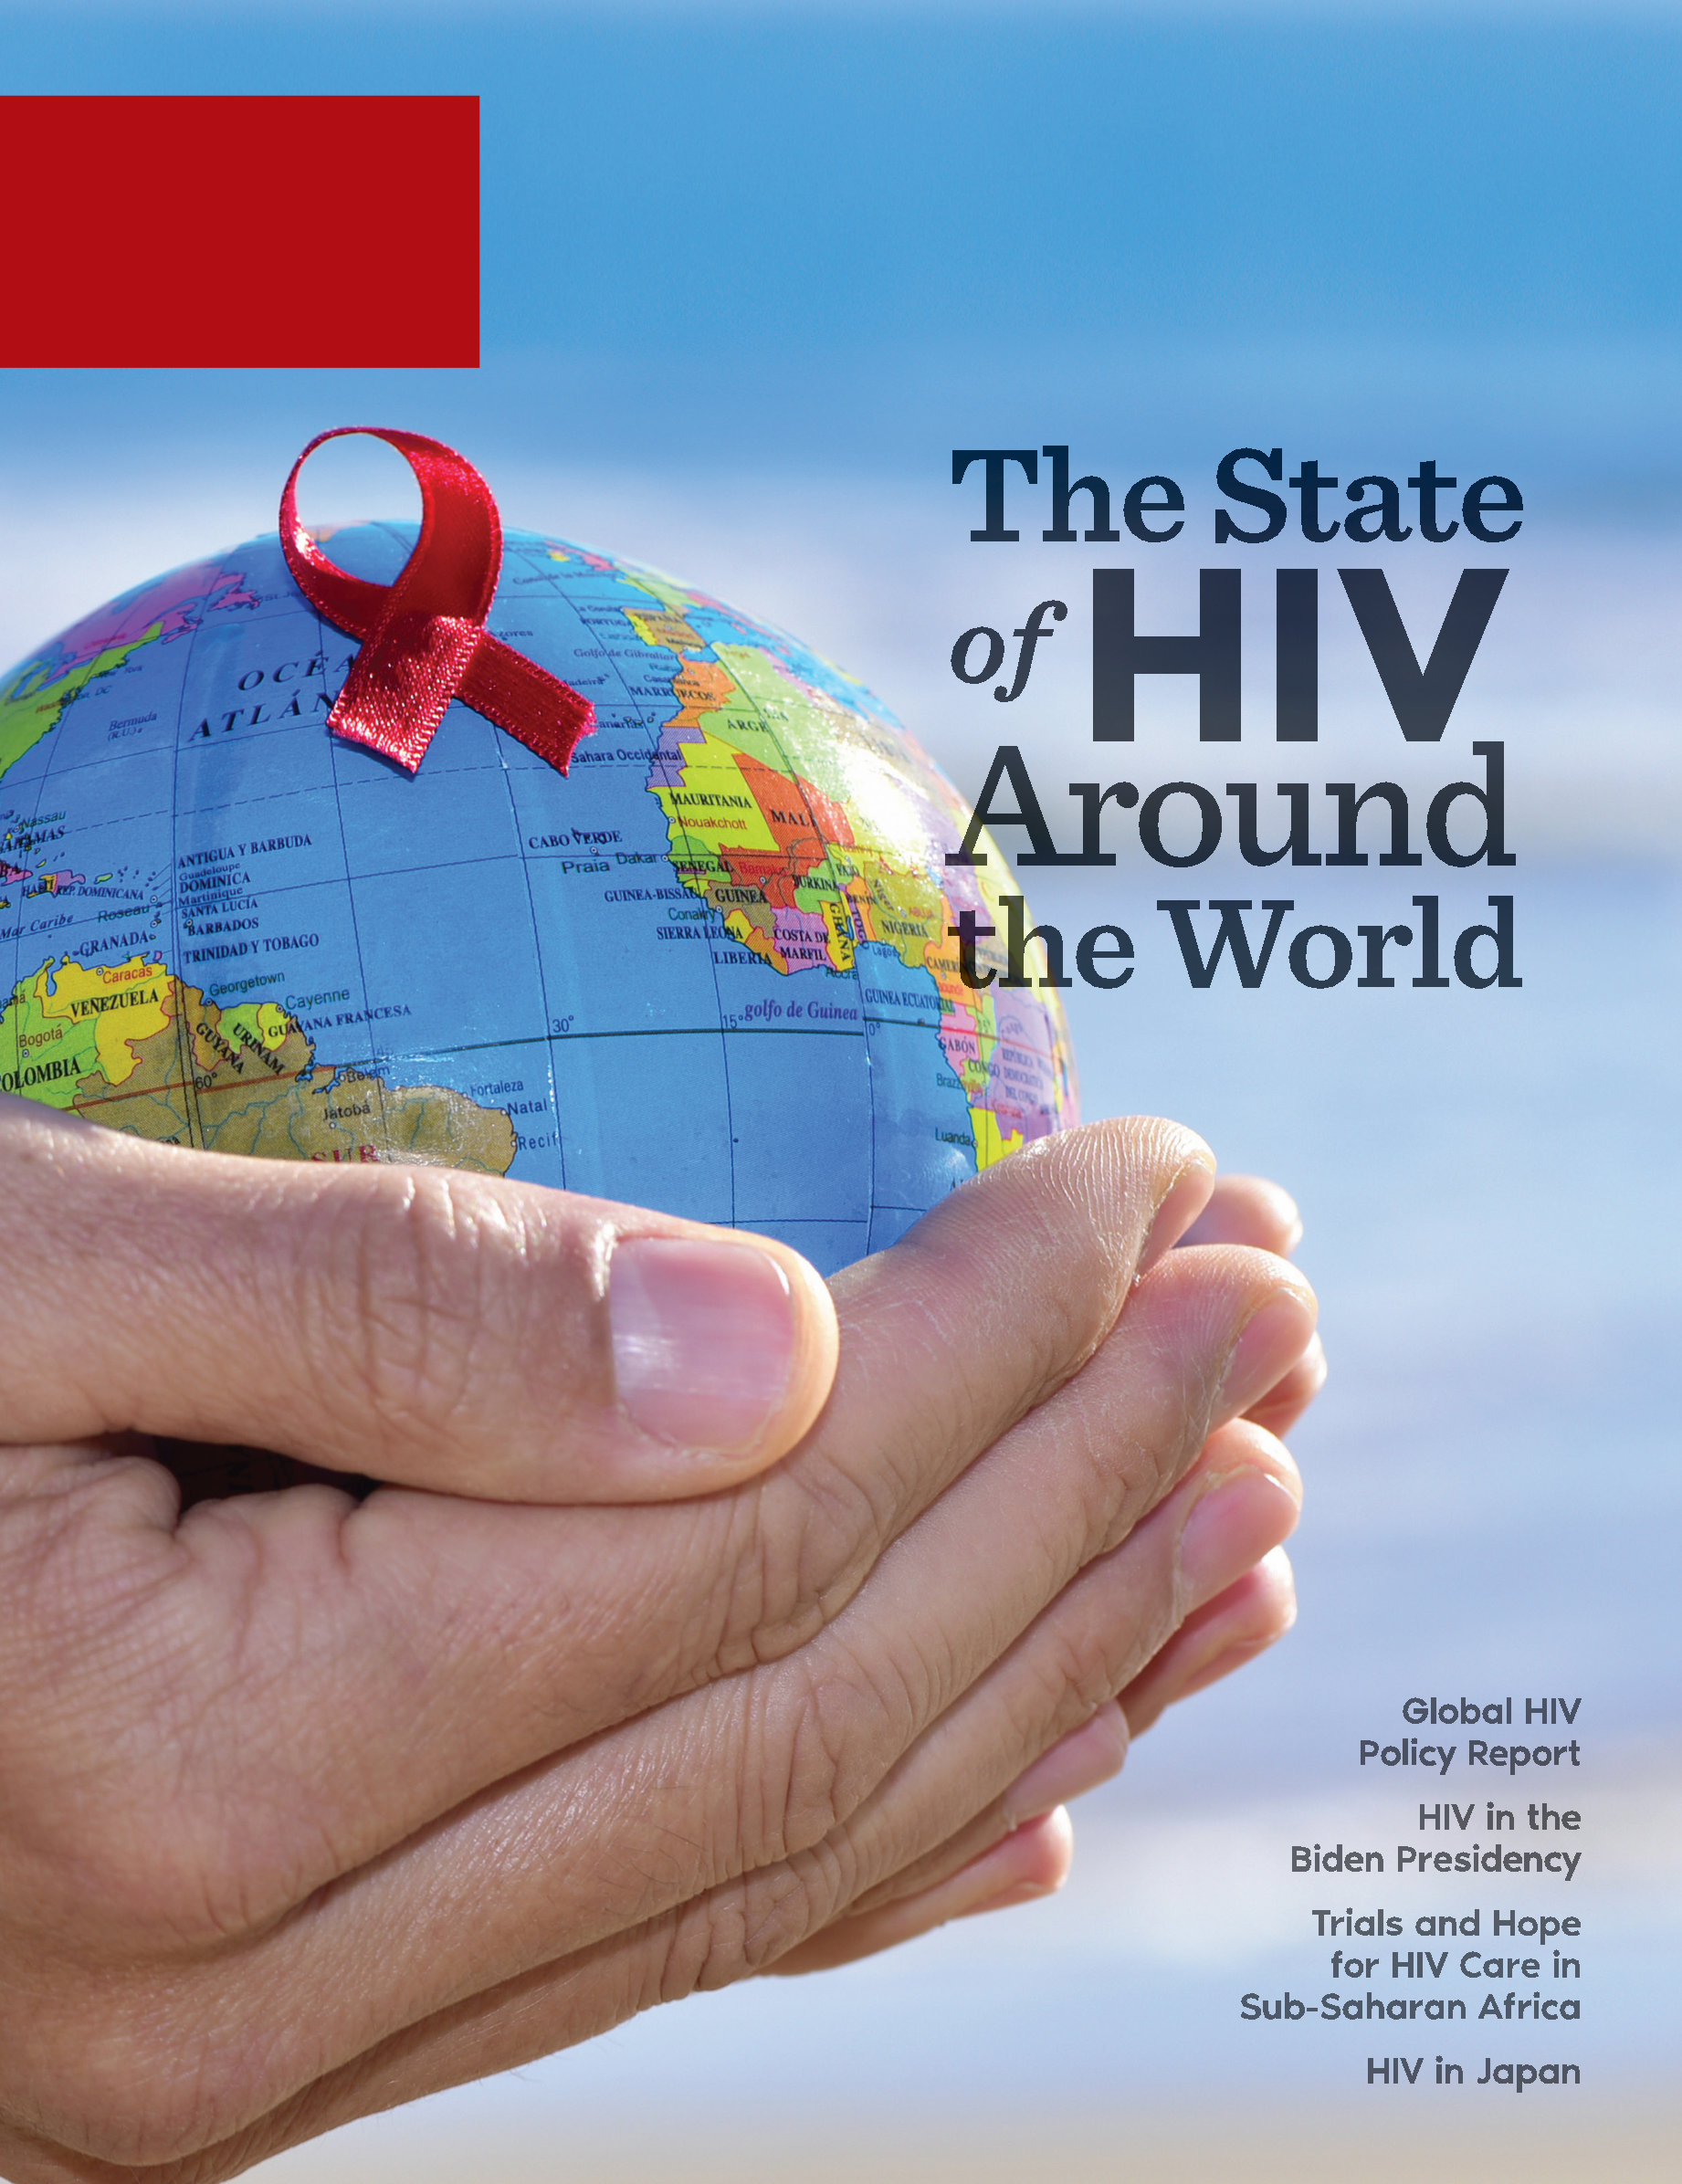 HIV Specialist: The State of HIV Around the World